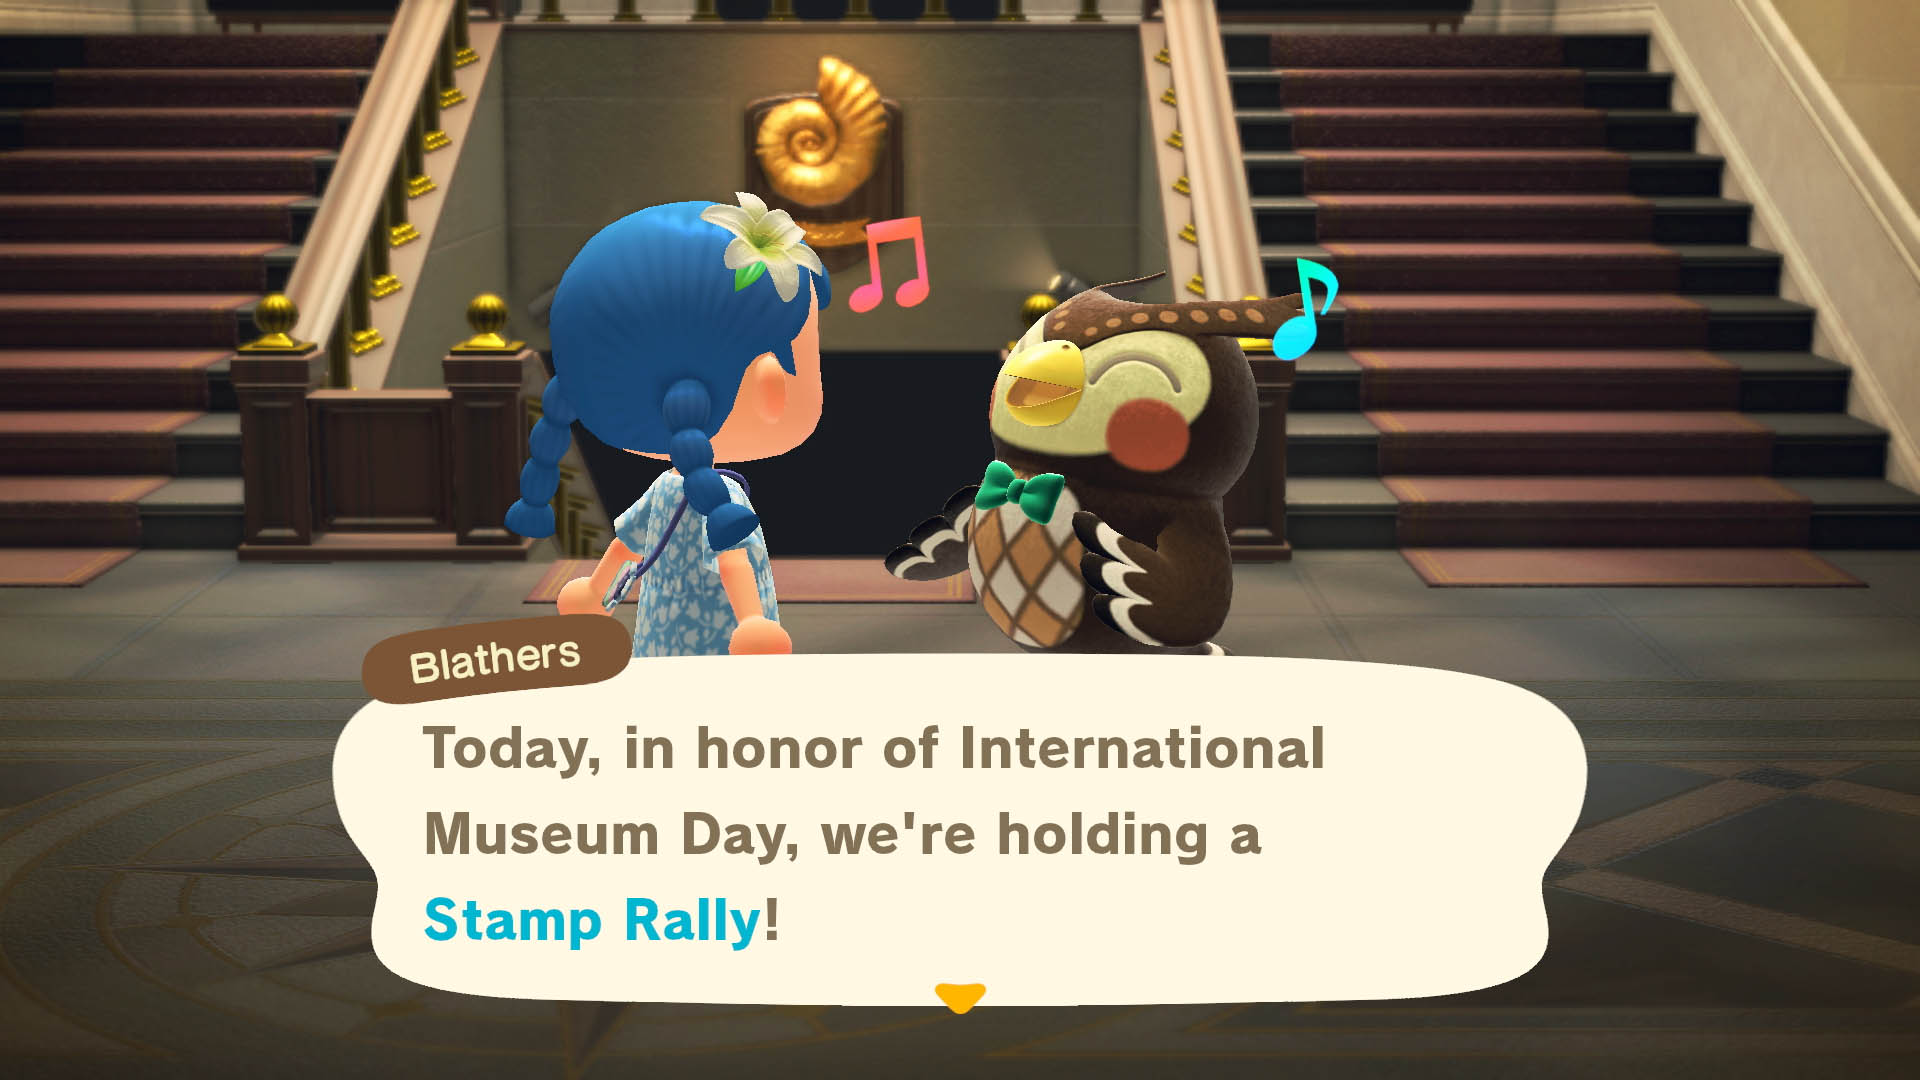 It looks like Animal Crossing is getting a long-requested addition - Video Games Chronicle